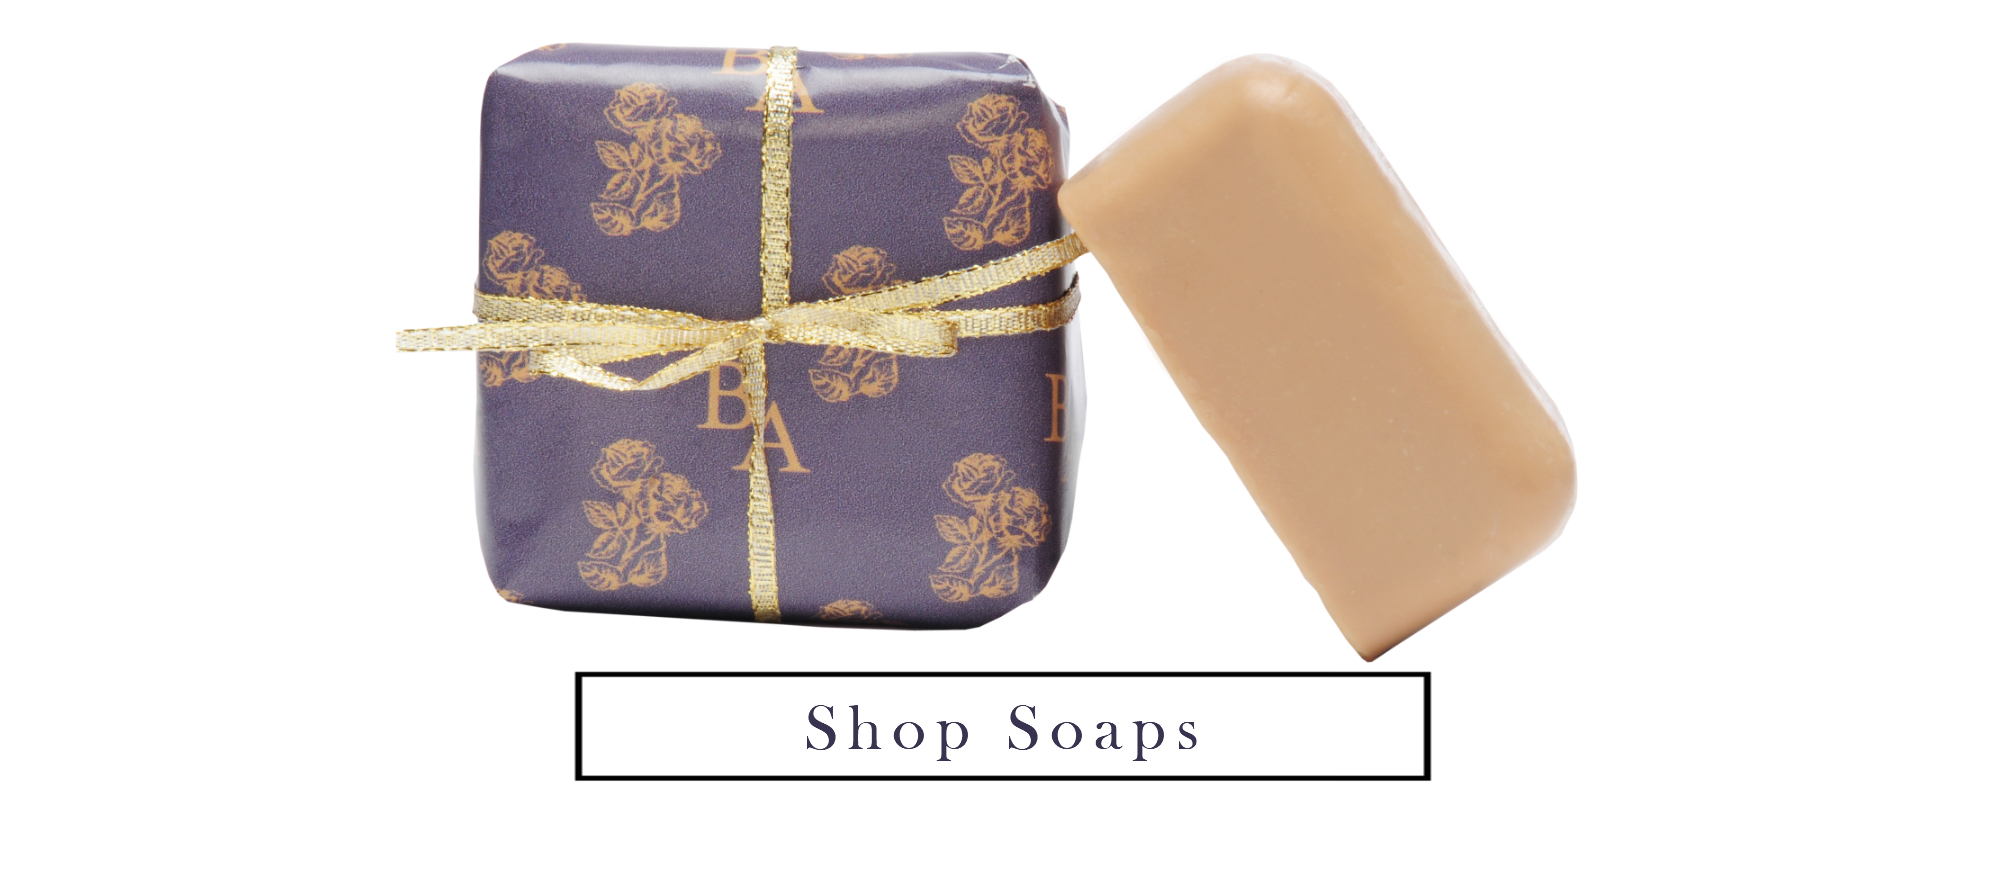 Two bars of Essential oil soap one wrapped in purple and gold/